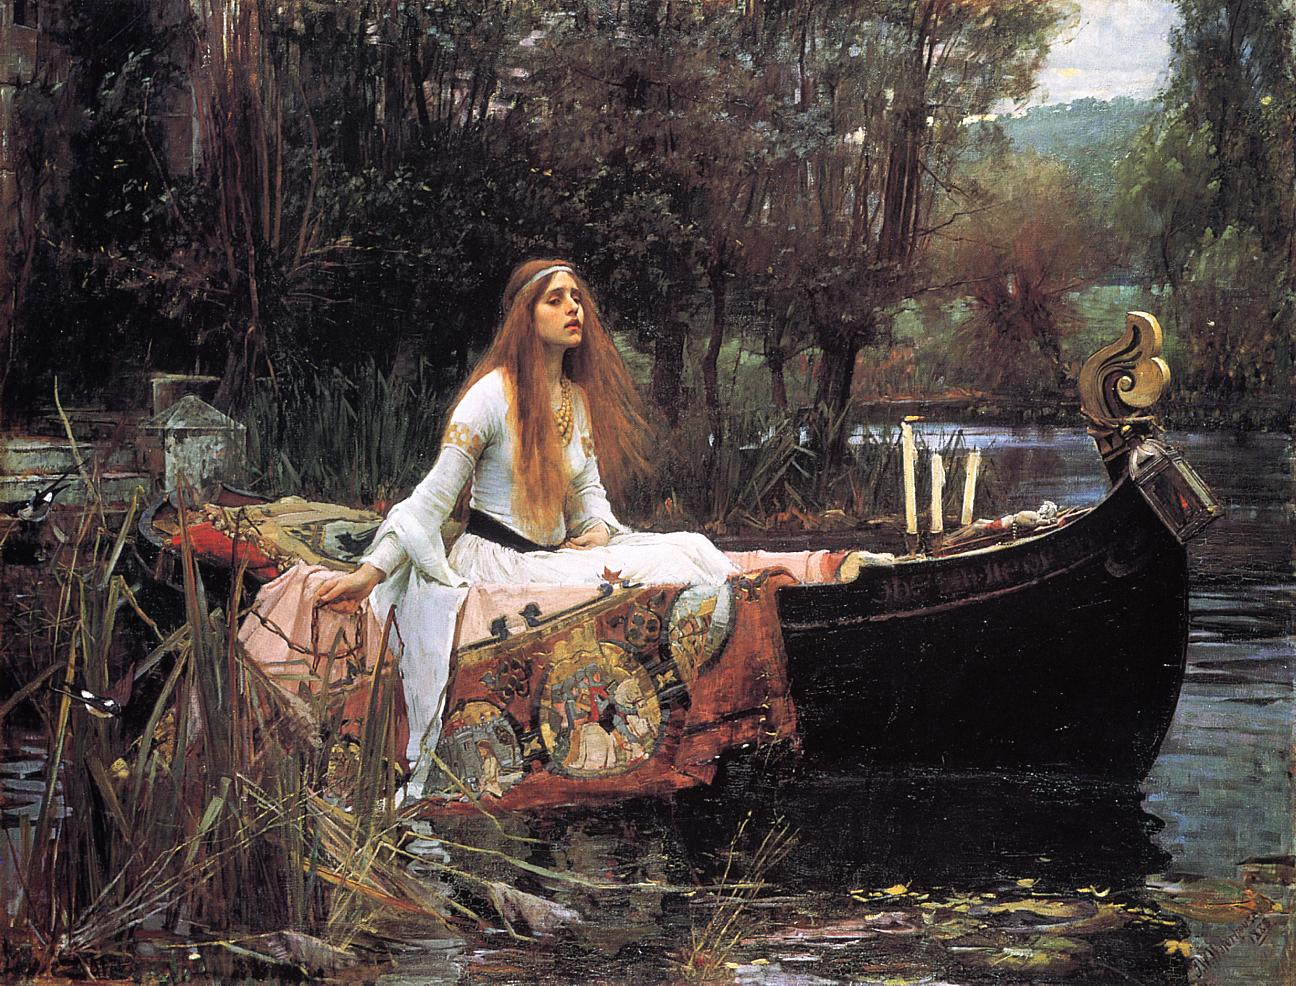 The Lady of Shallot. Obra de John William Waterhouse. 1888